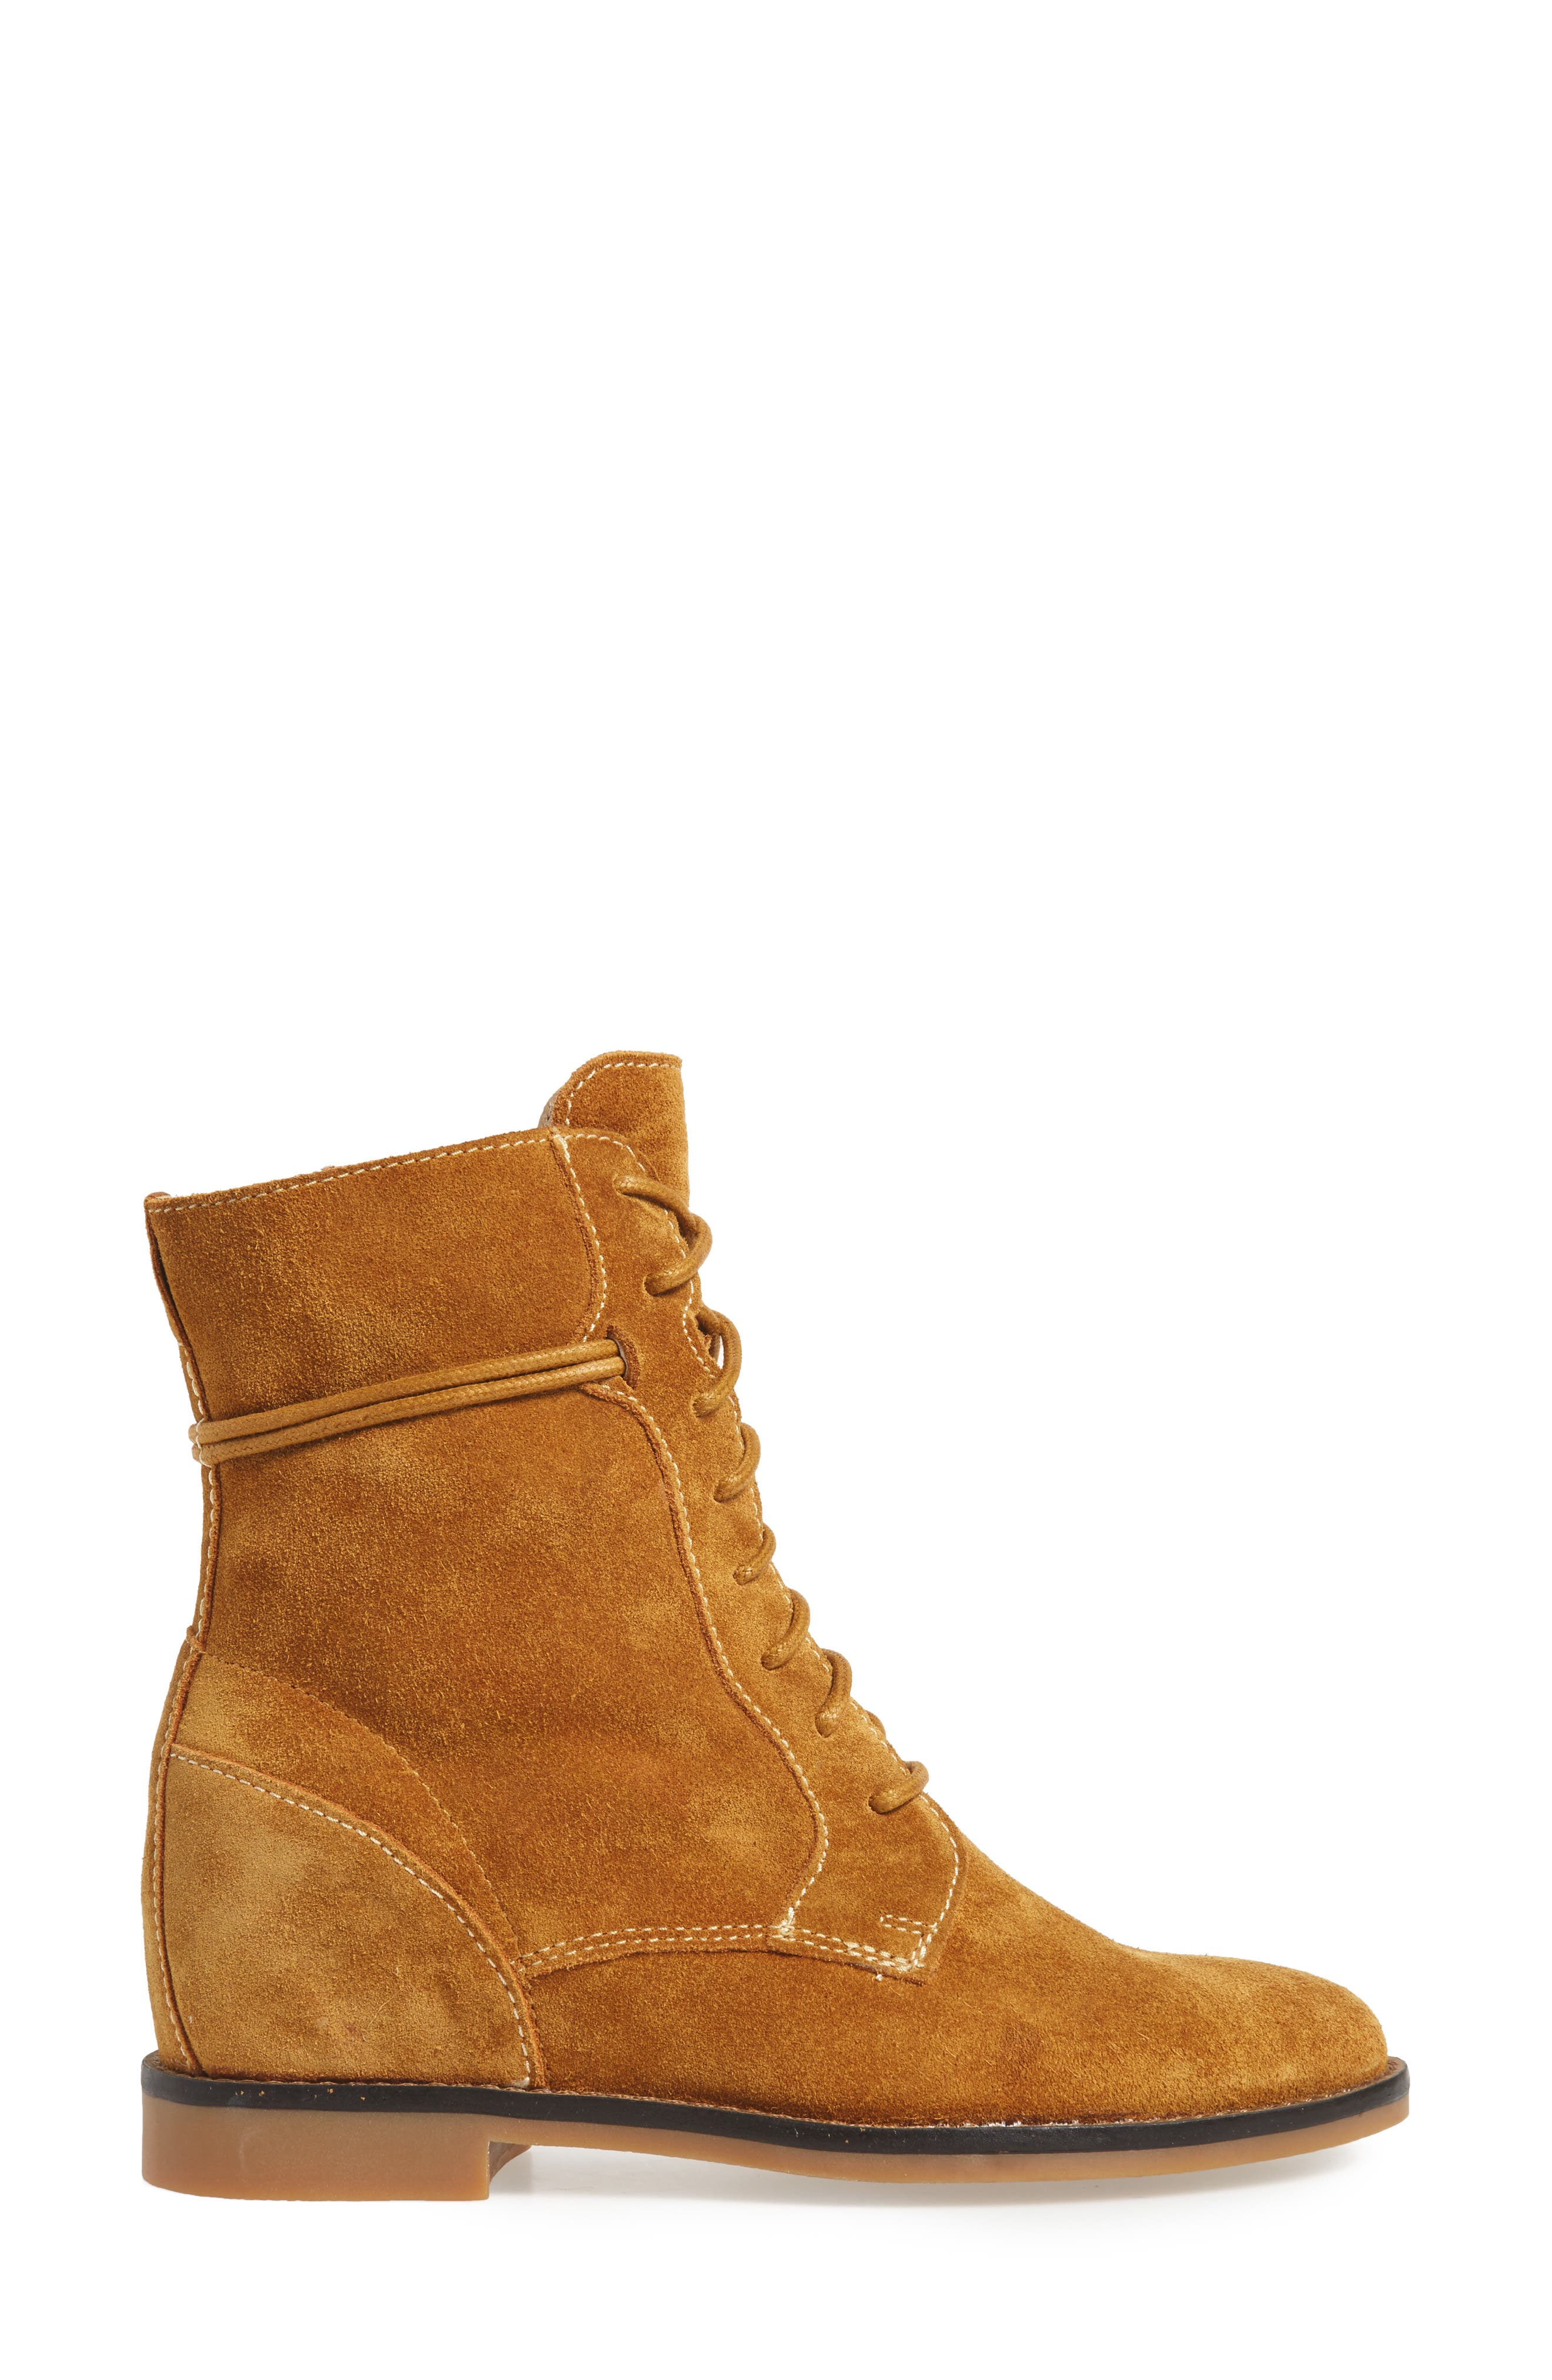 Bab Felise Boot,                             Alternate thumbnail 2, color,                             Camel Suede